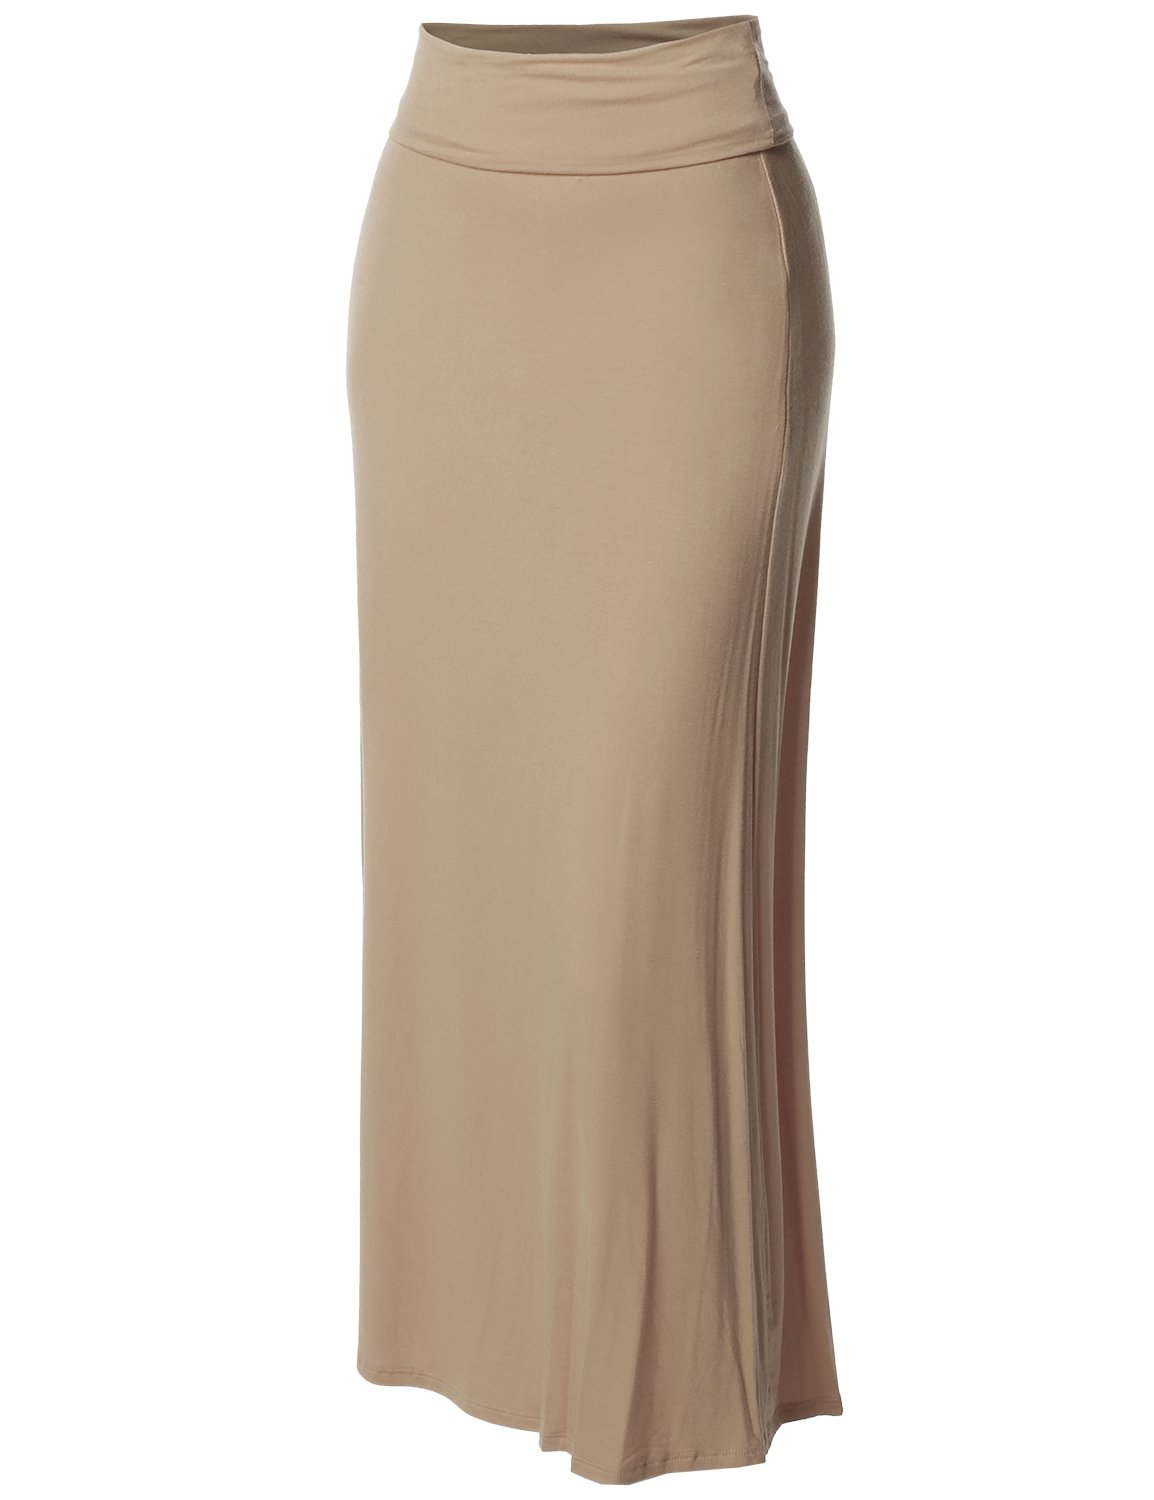 Stylish Fold Over Flare Long Maxi Skirt - Made in USA Beige M by Made by Emma (Image #1)